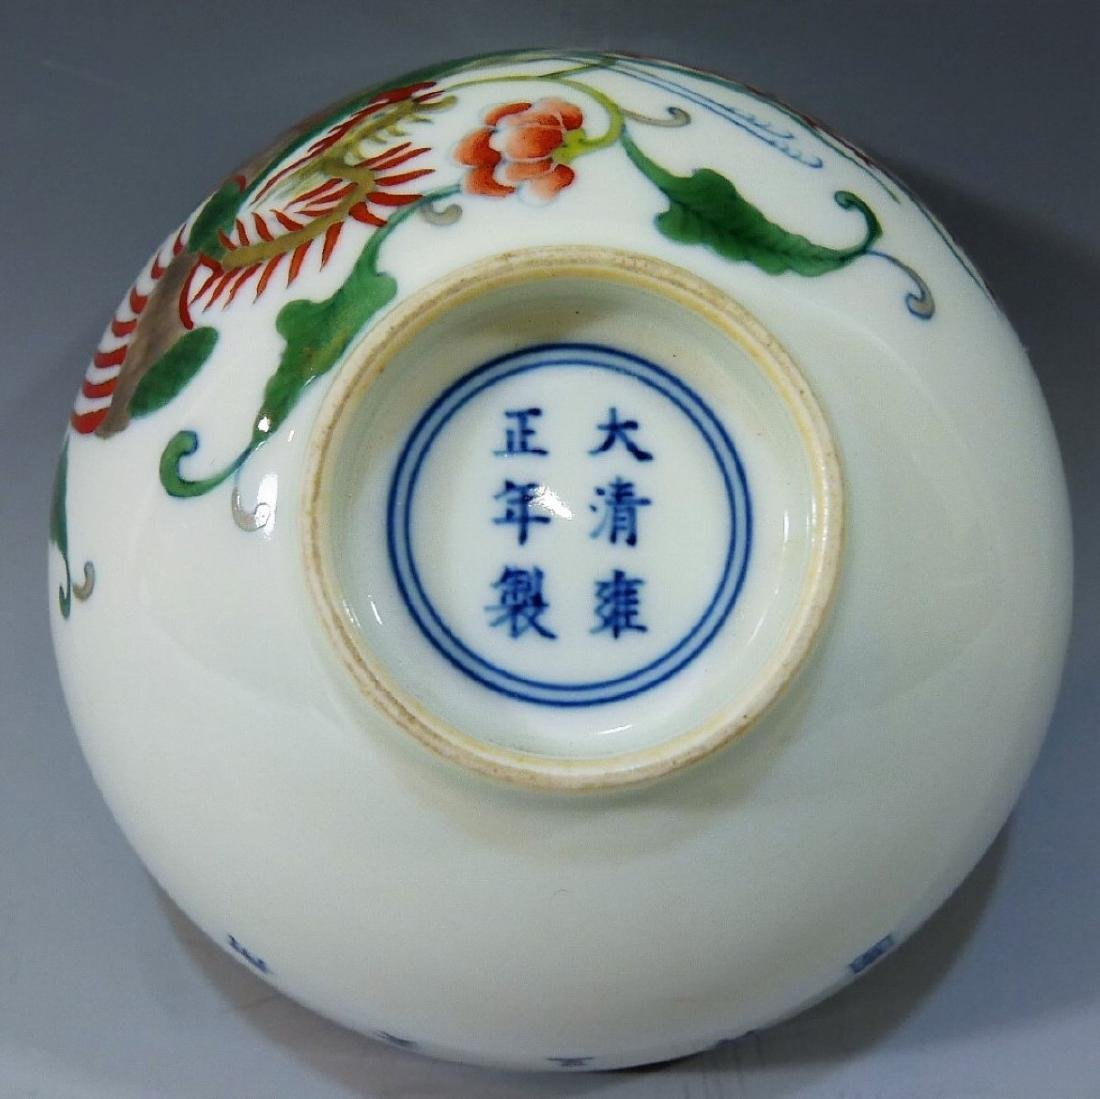 CHINESE ANTIQUE DOUCAI PORCELAIN BOWL - YONGZHENG MARK